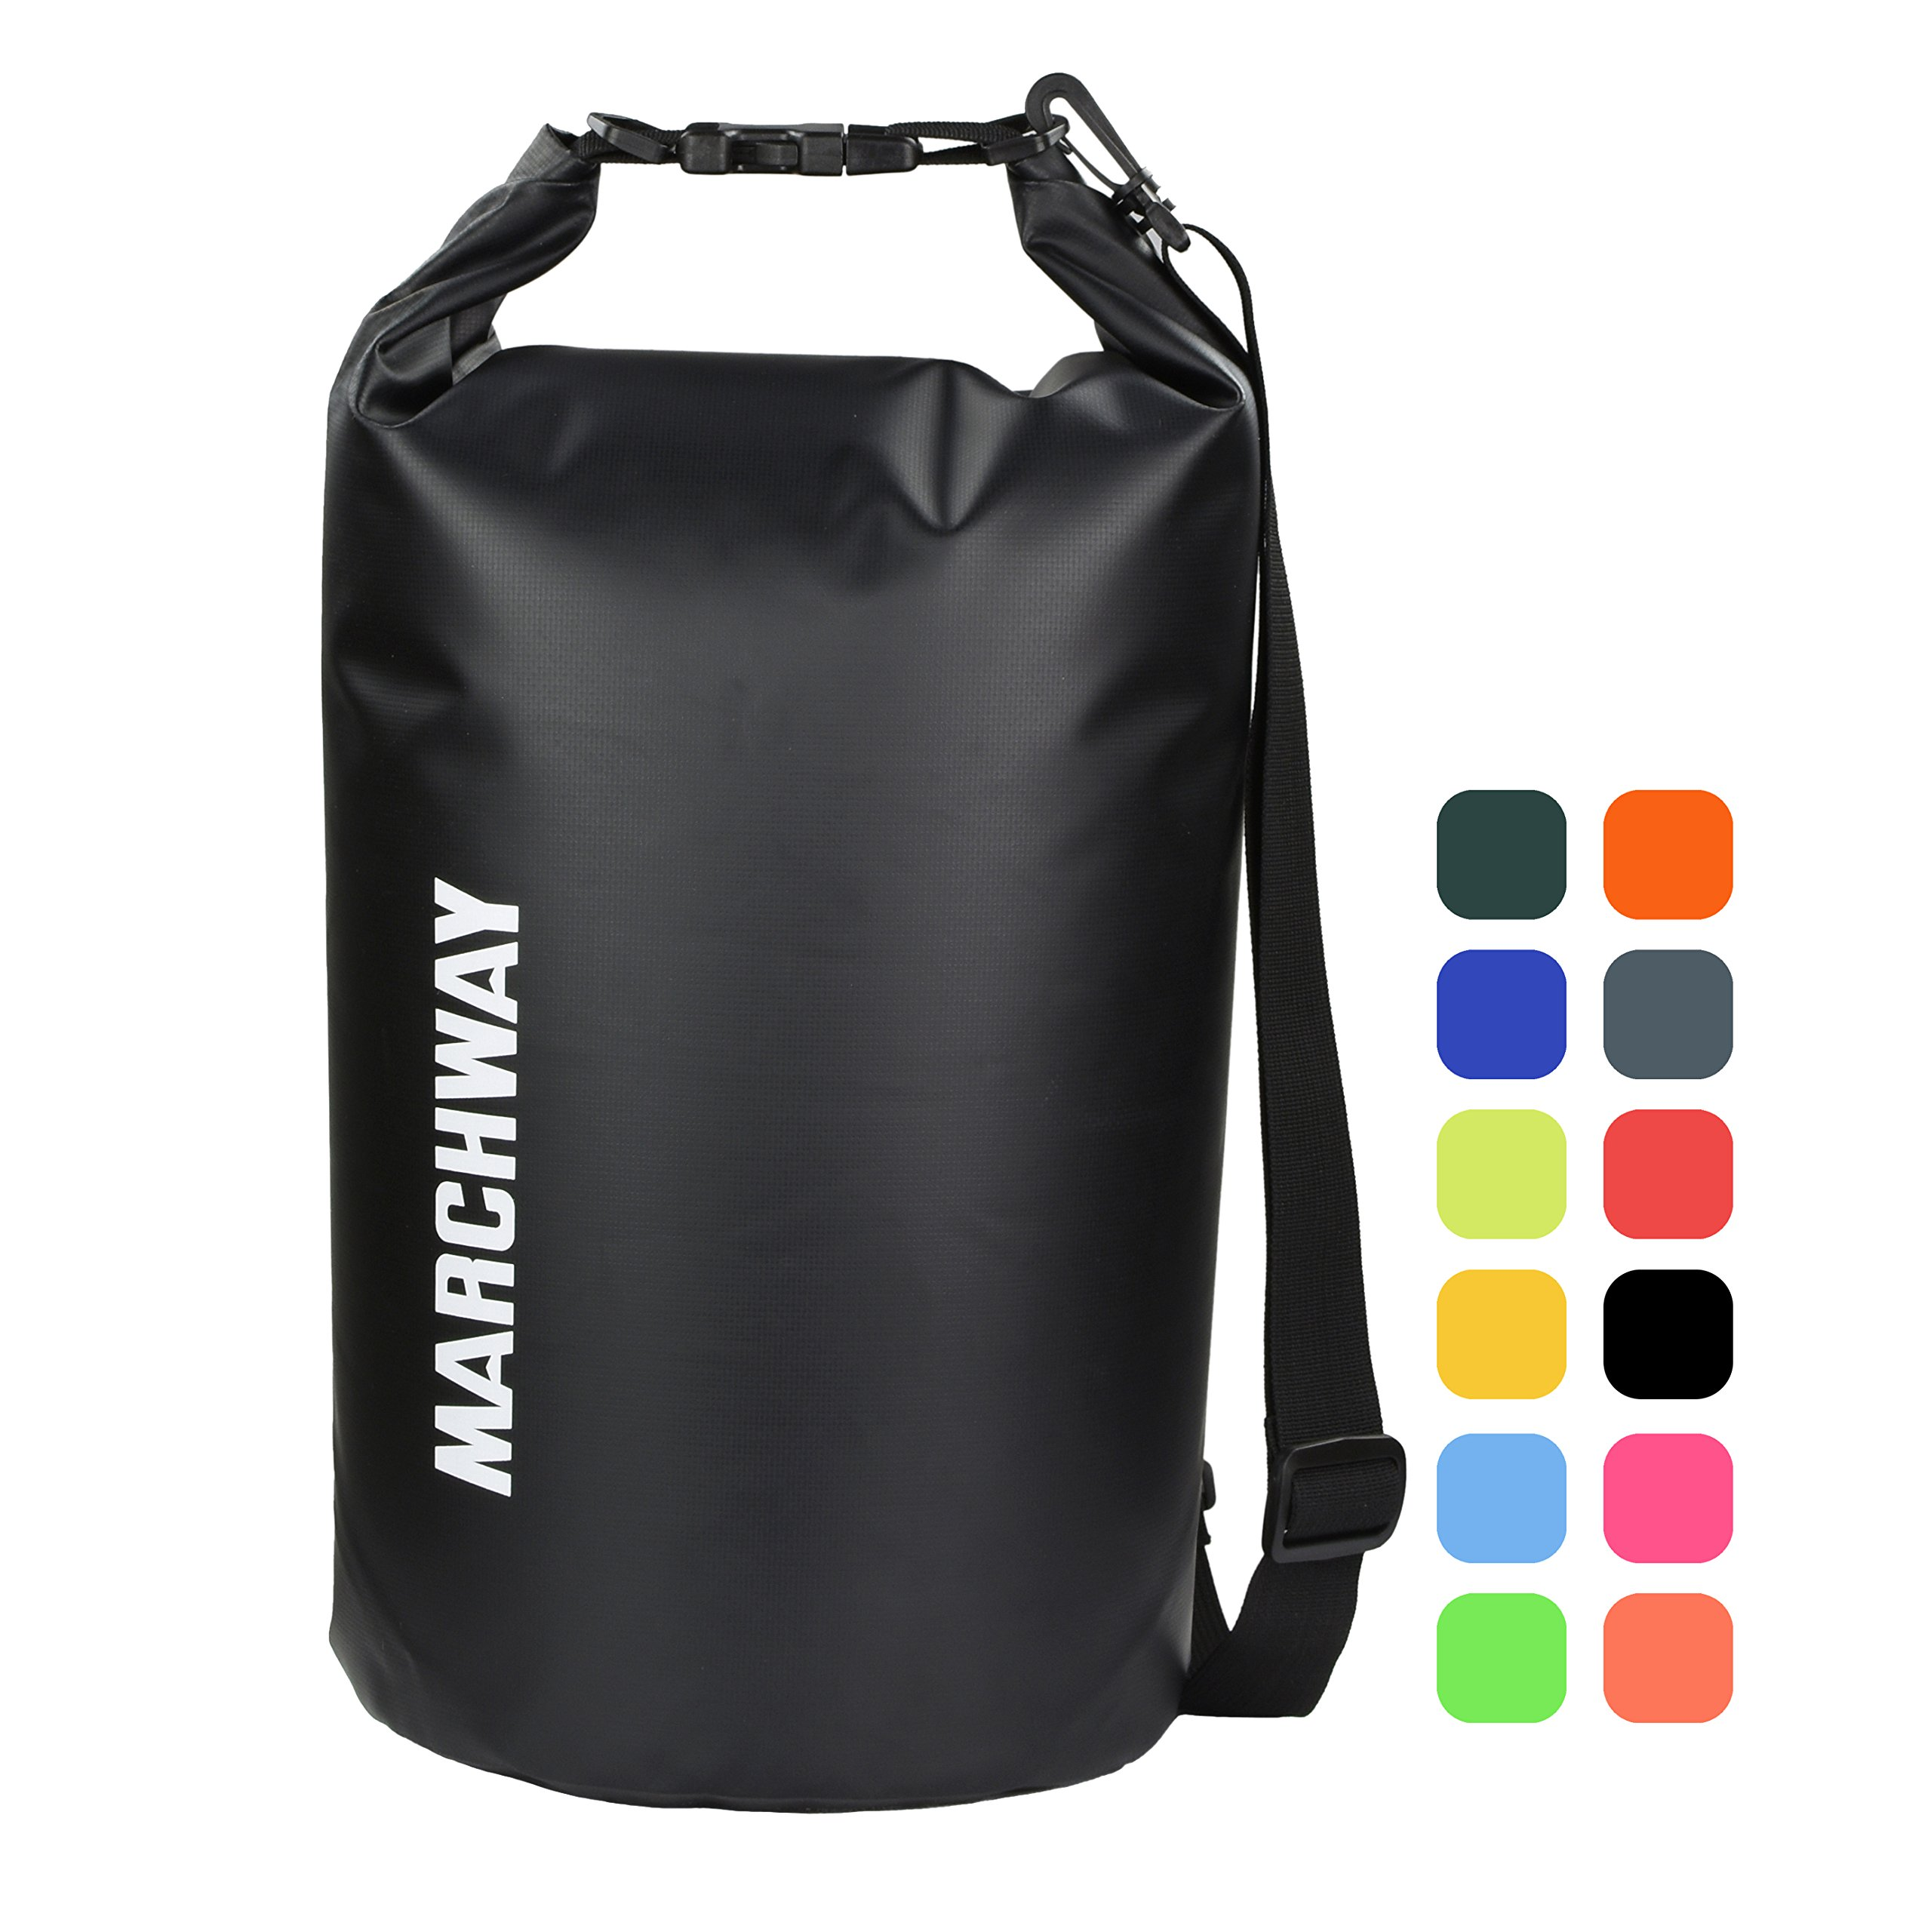 Best Rated in Marine Dry Bags   Helpful Customer Reviews - Amazon.com 0a91e86c1c